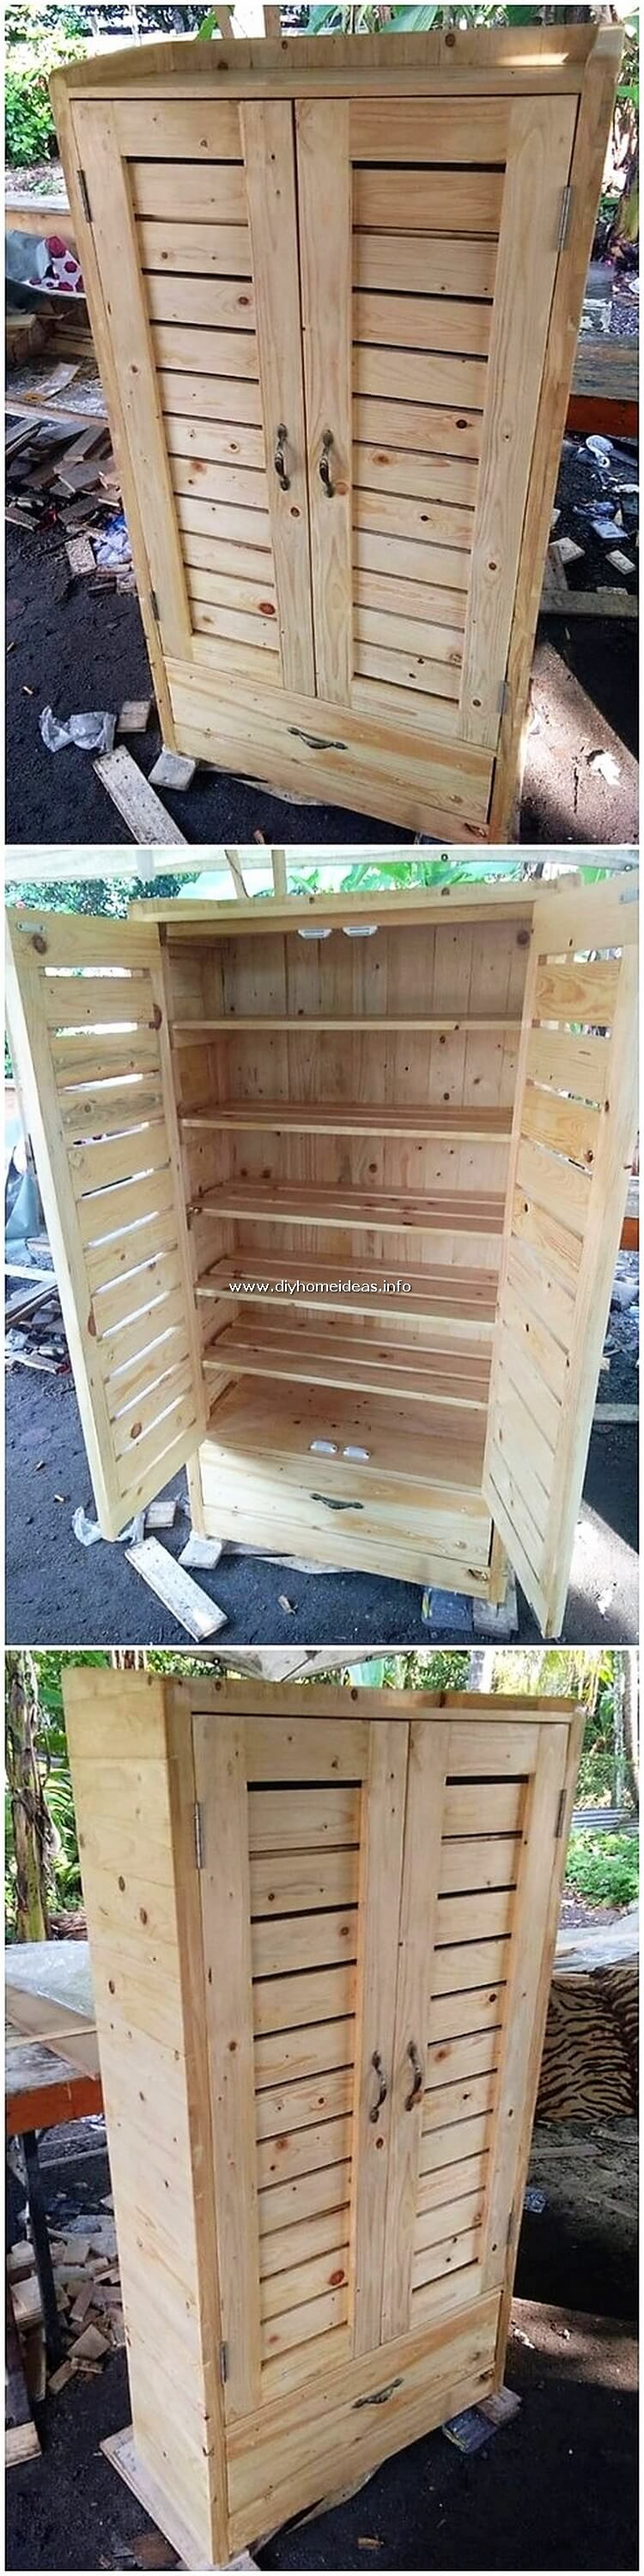 Pallet Closet or Cabinet